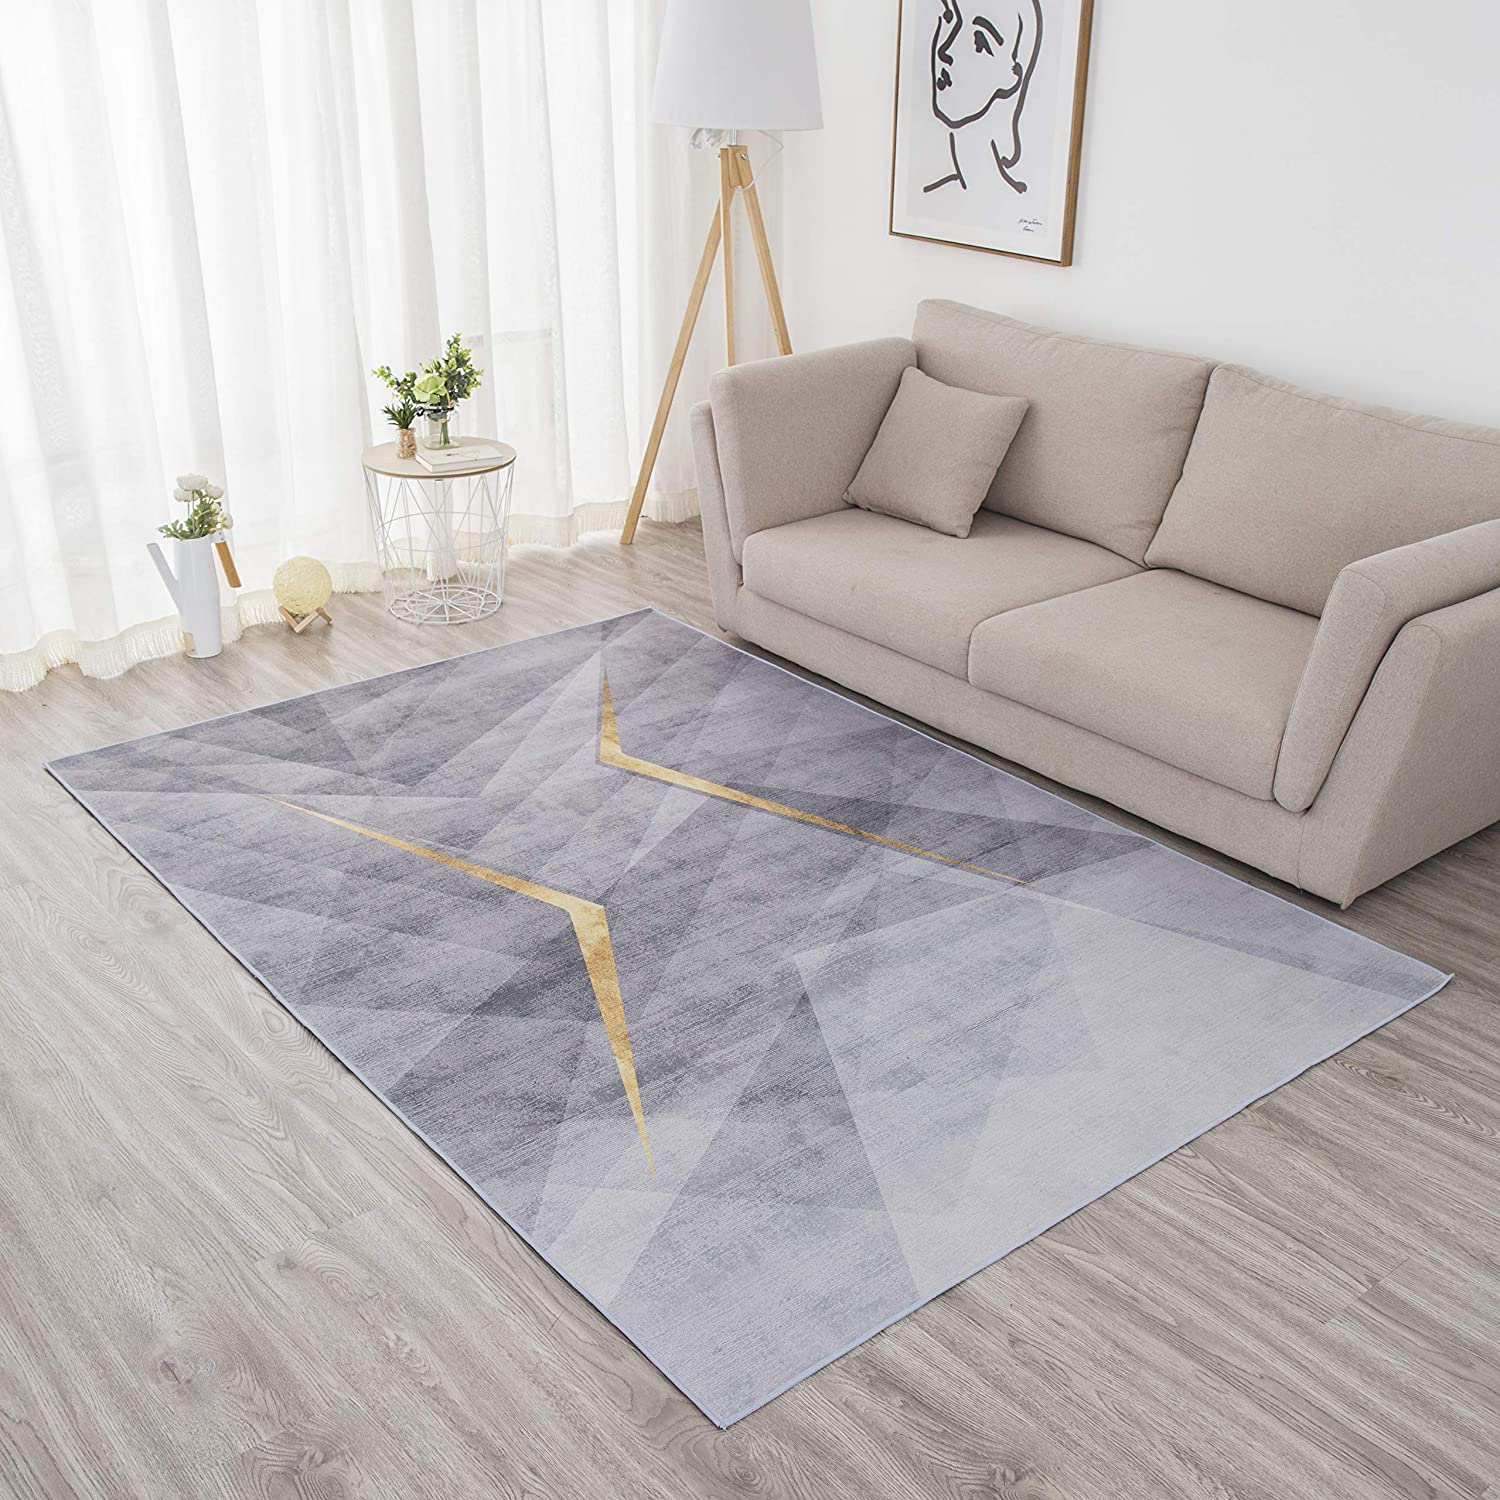 Sinofarms Luxury Printed Area Rugs Car Pattern Dealing full price reduction Modern Geometric Outlet ☆ Free Shipping